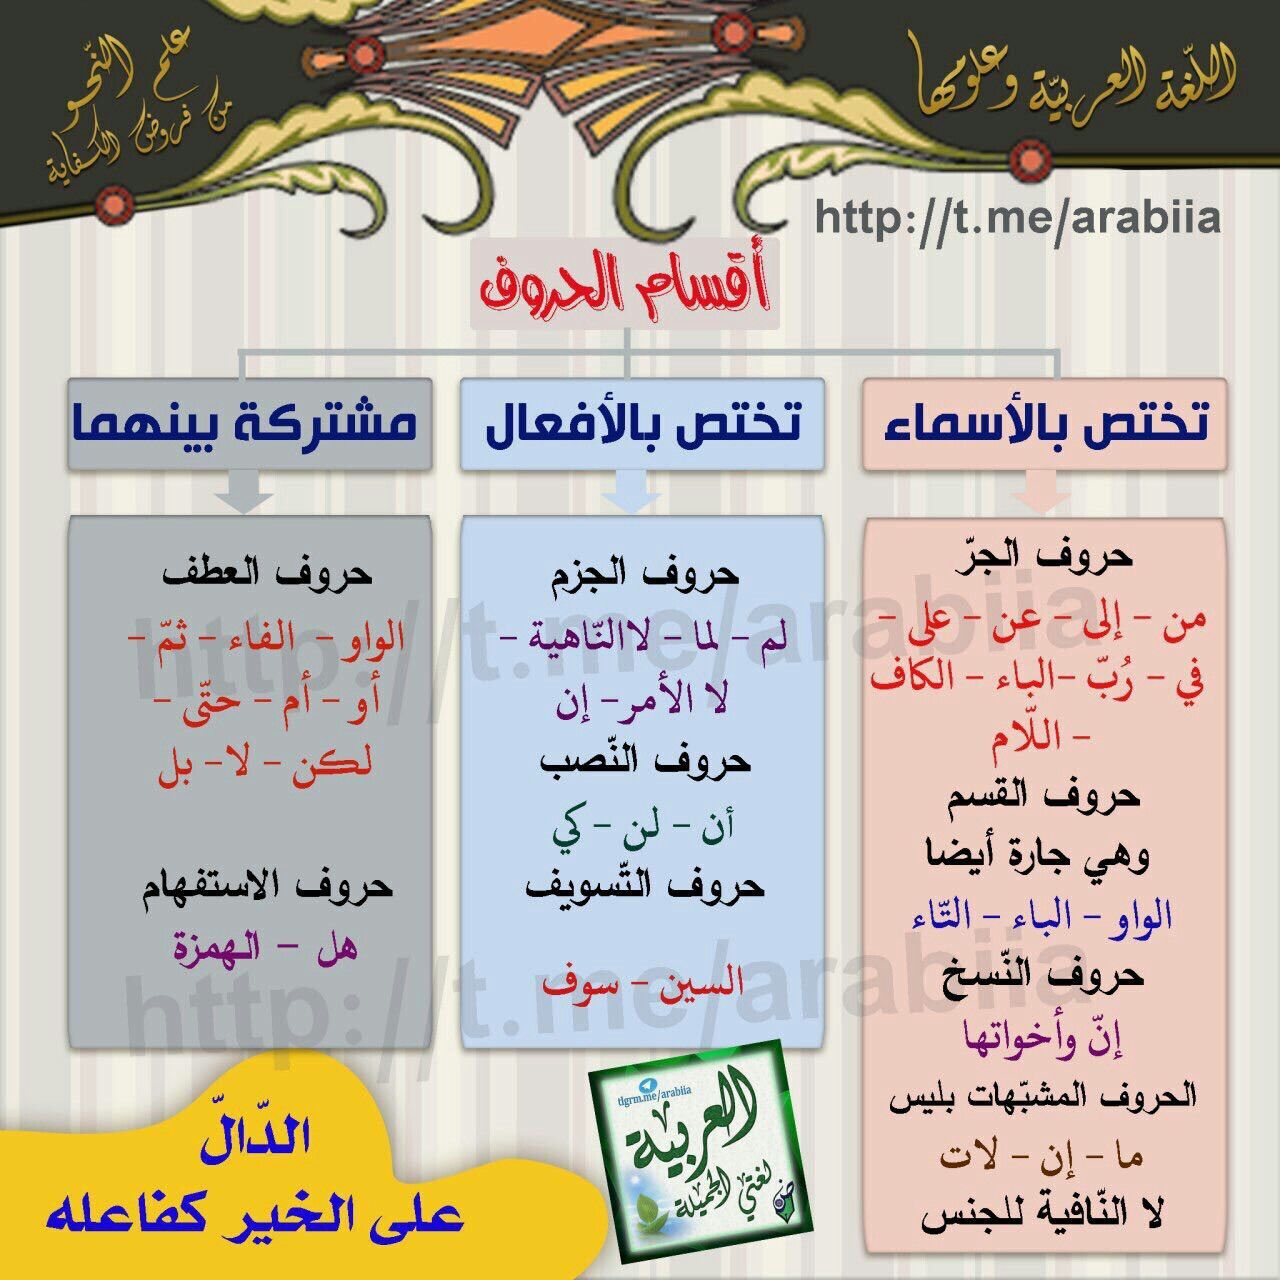 Pin By Amy On شعر عربي Arabic Poetry Arabic Language Learn Arabic Language Learning Arabic